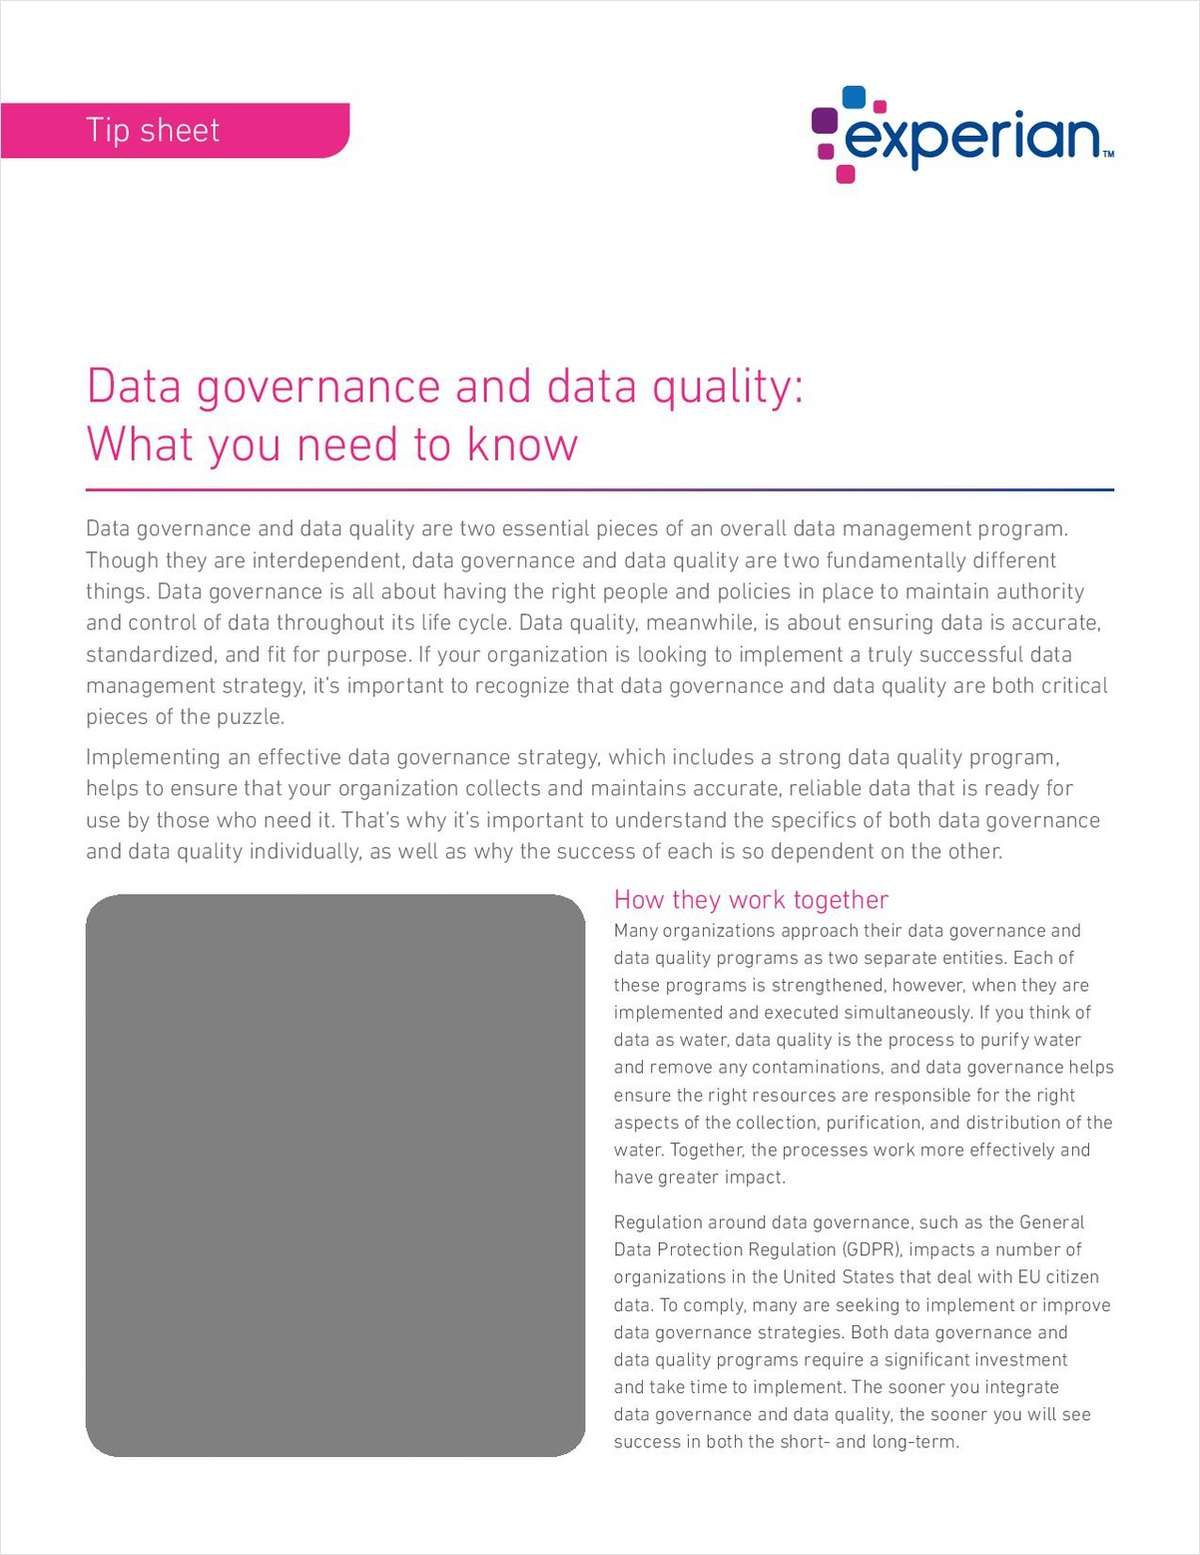 Data governance and data quality: What you need to know